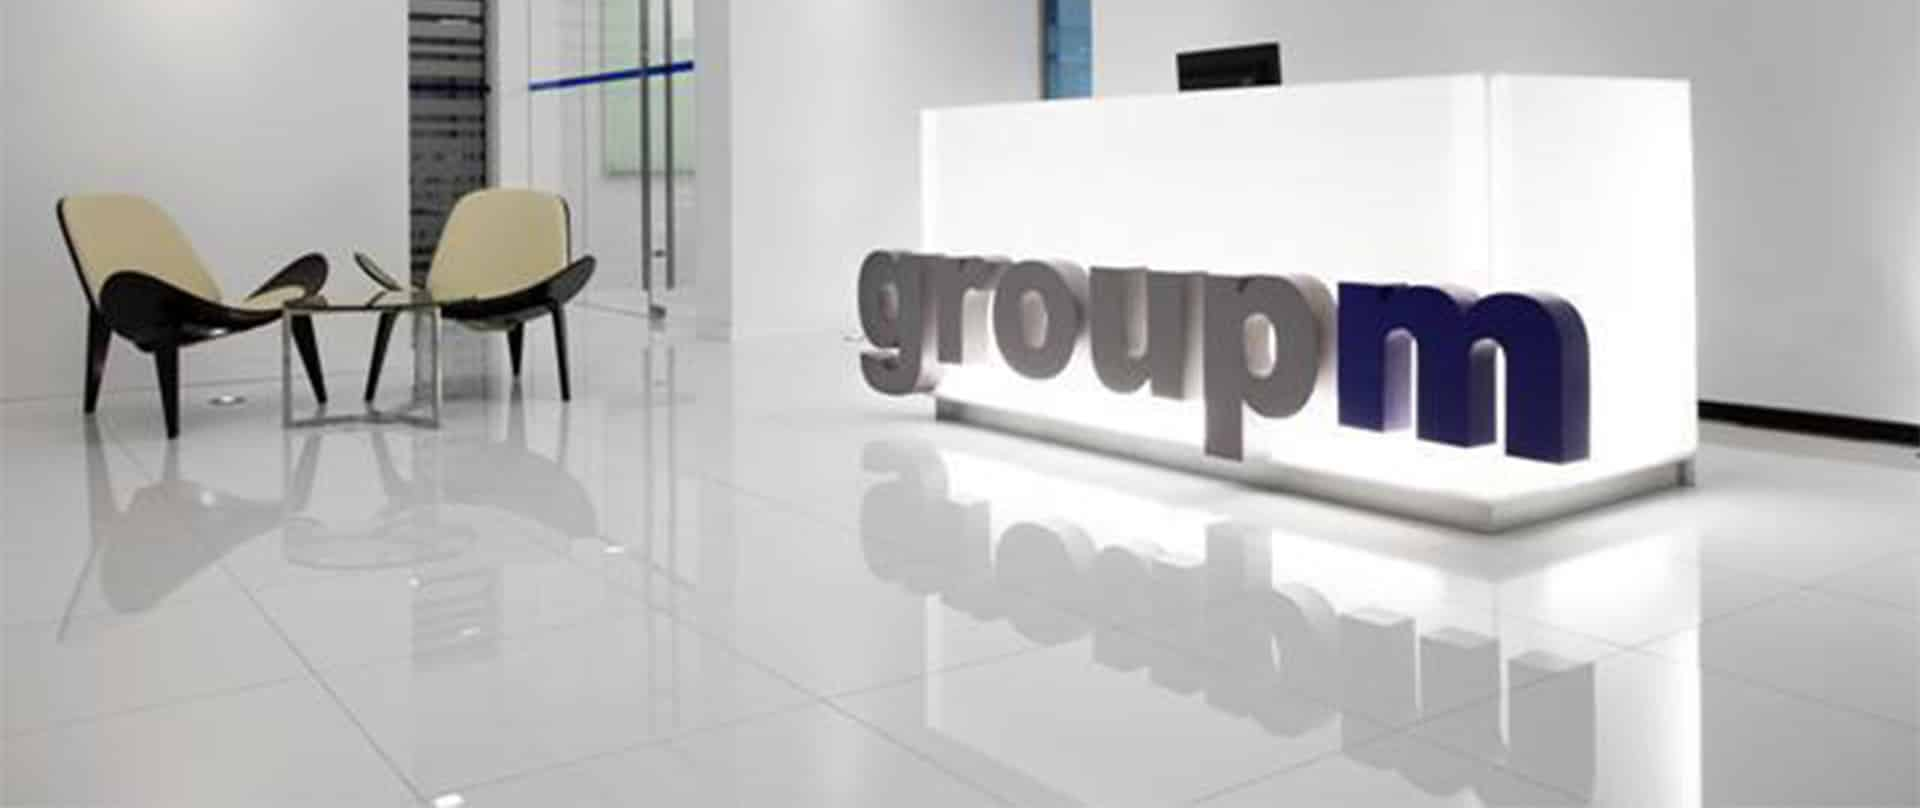 GroupM Adds Over 6,000 New Candidates to Their Talent Pipeline